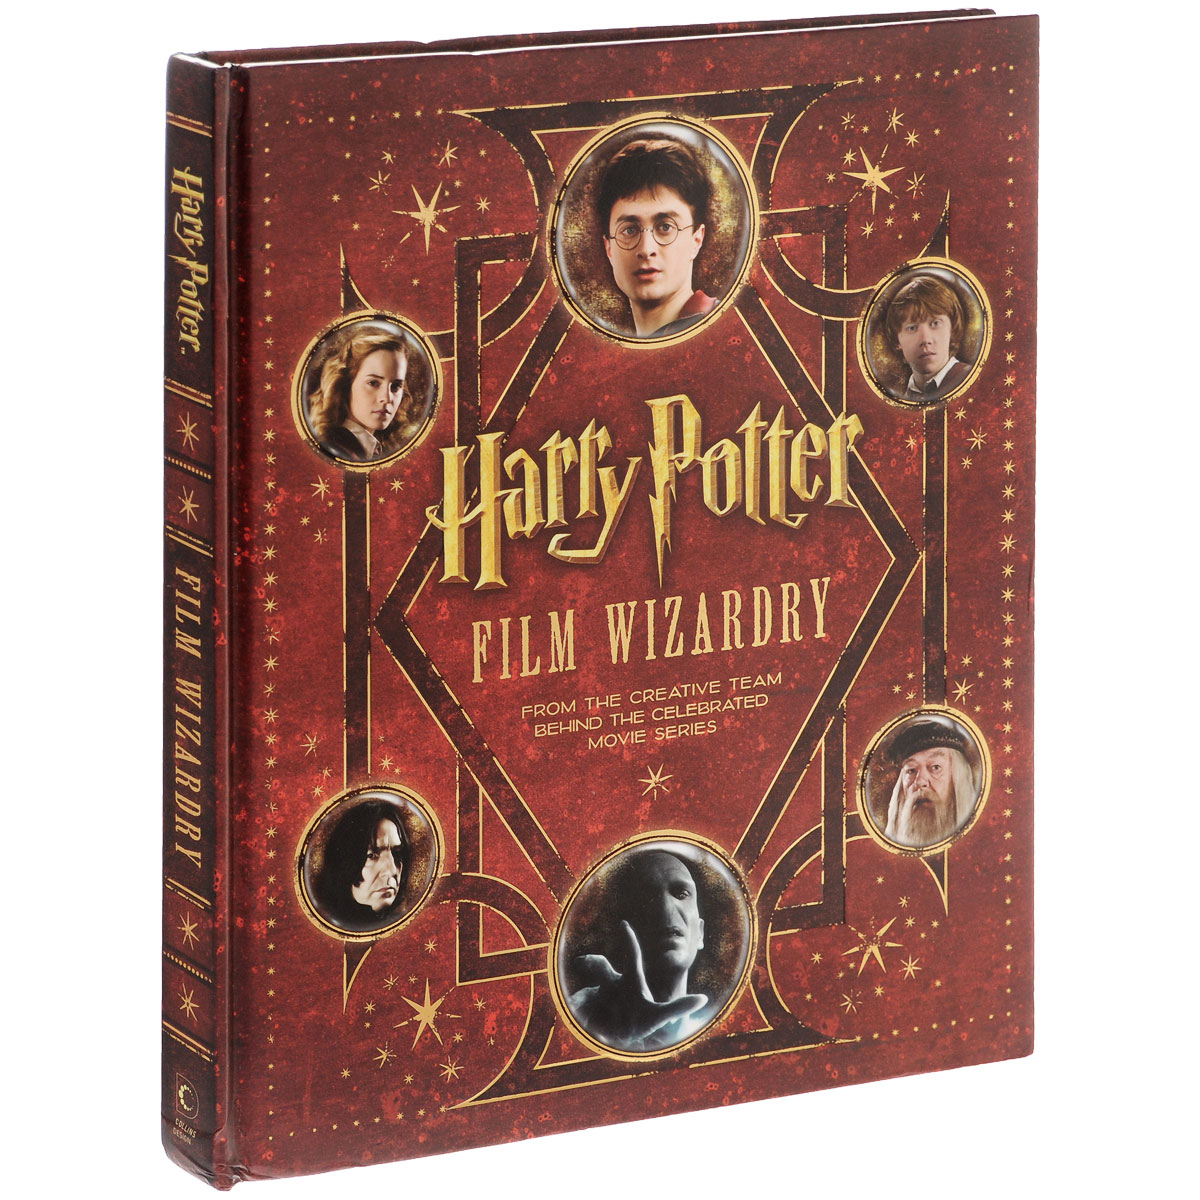 Harry Potter Film Wizardry potter b the beatrix potter collection volume one